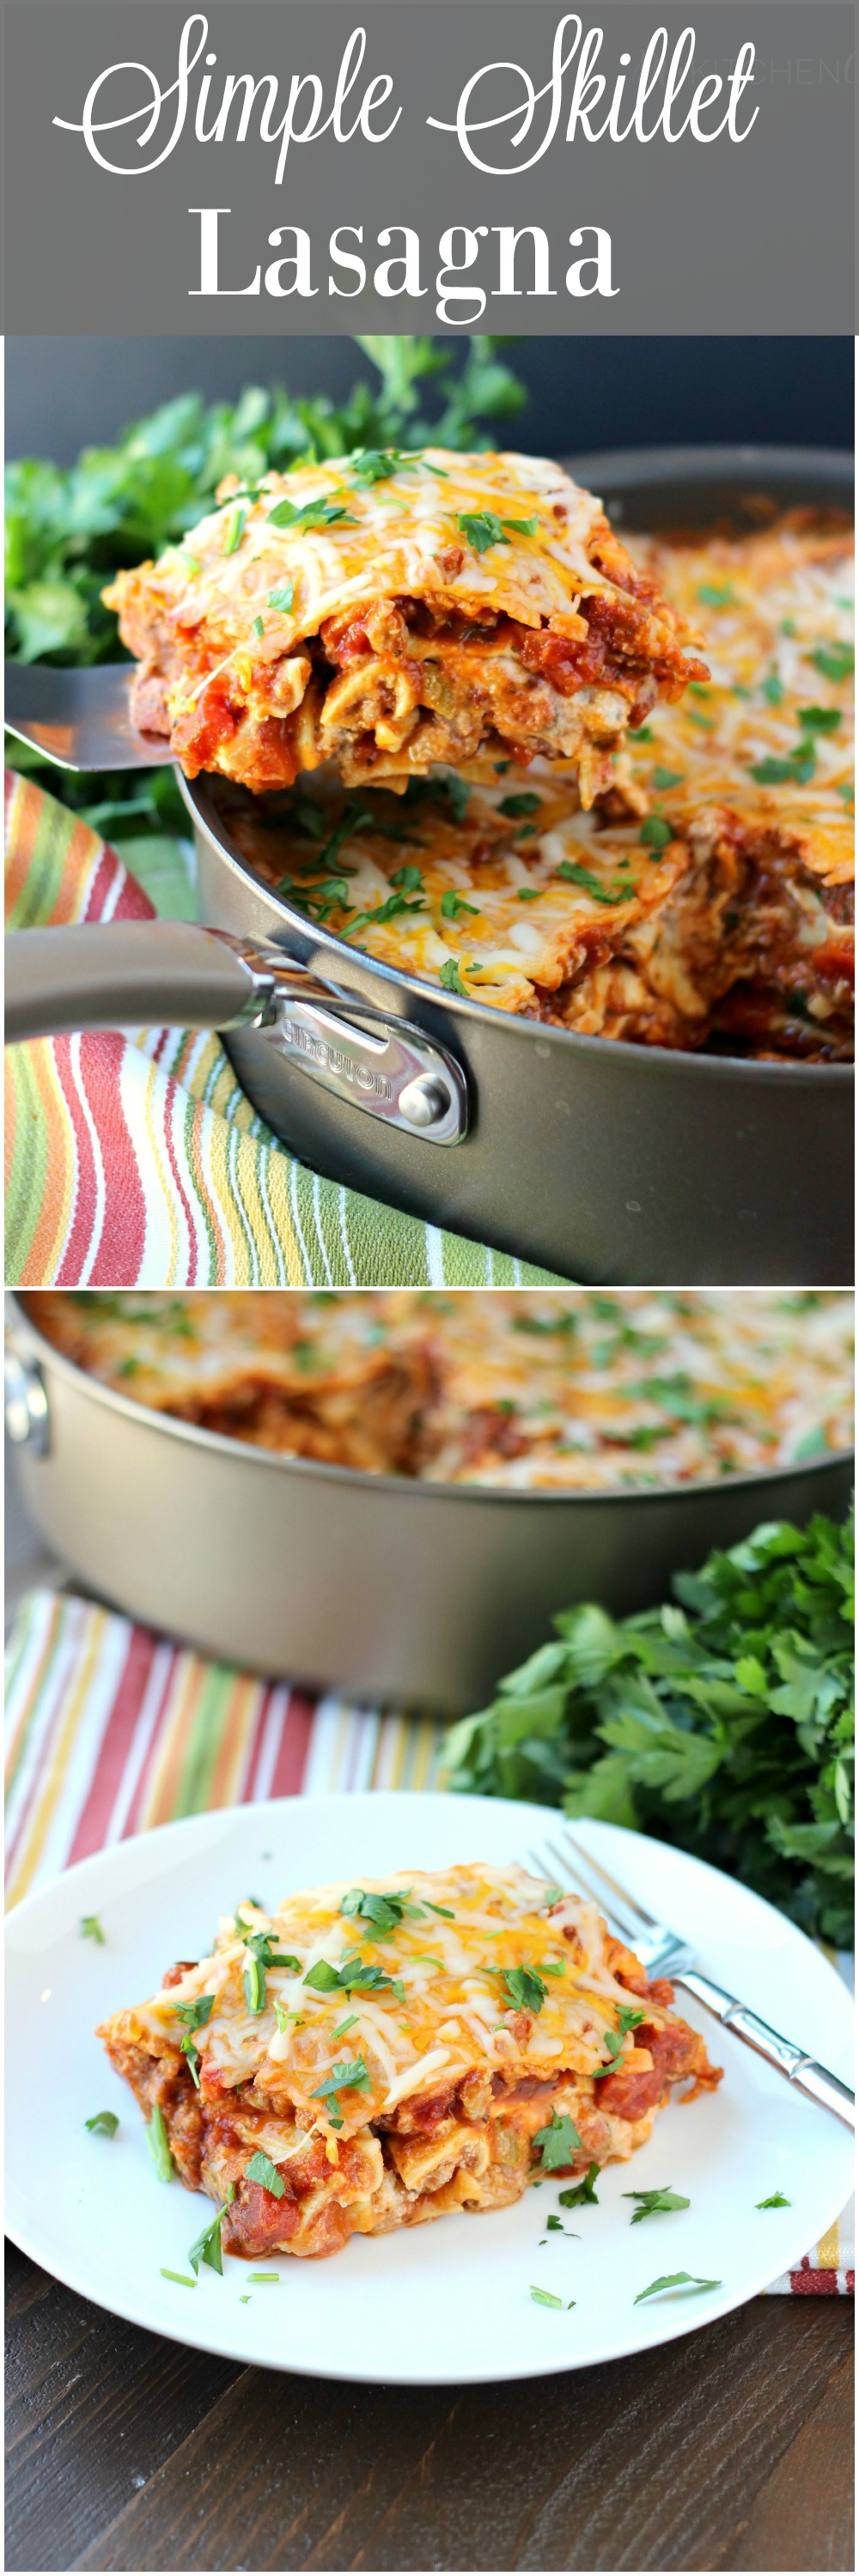 Simple Skillet Lasagna ~ mykitchencraze.com ~ Need an easy meal for dinner tonight? This skillet lasagna will be on your table in no time. Delicious! #NaturallyCheesy #ad